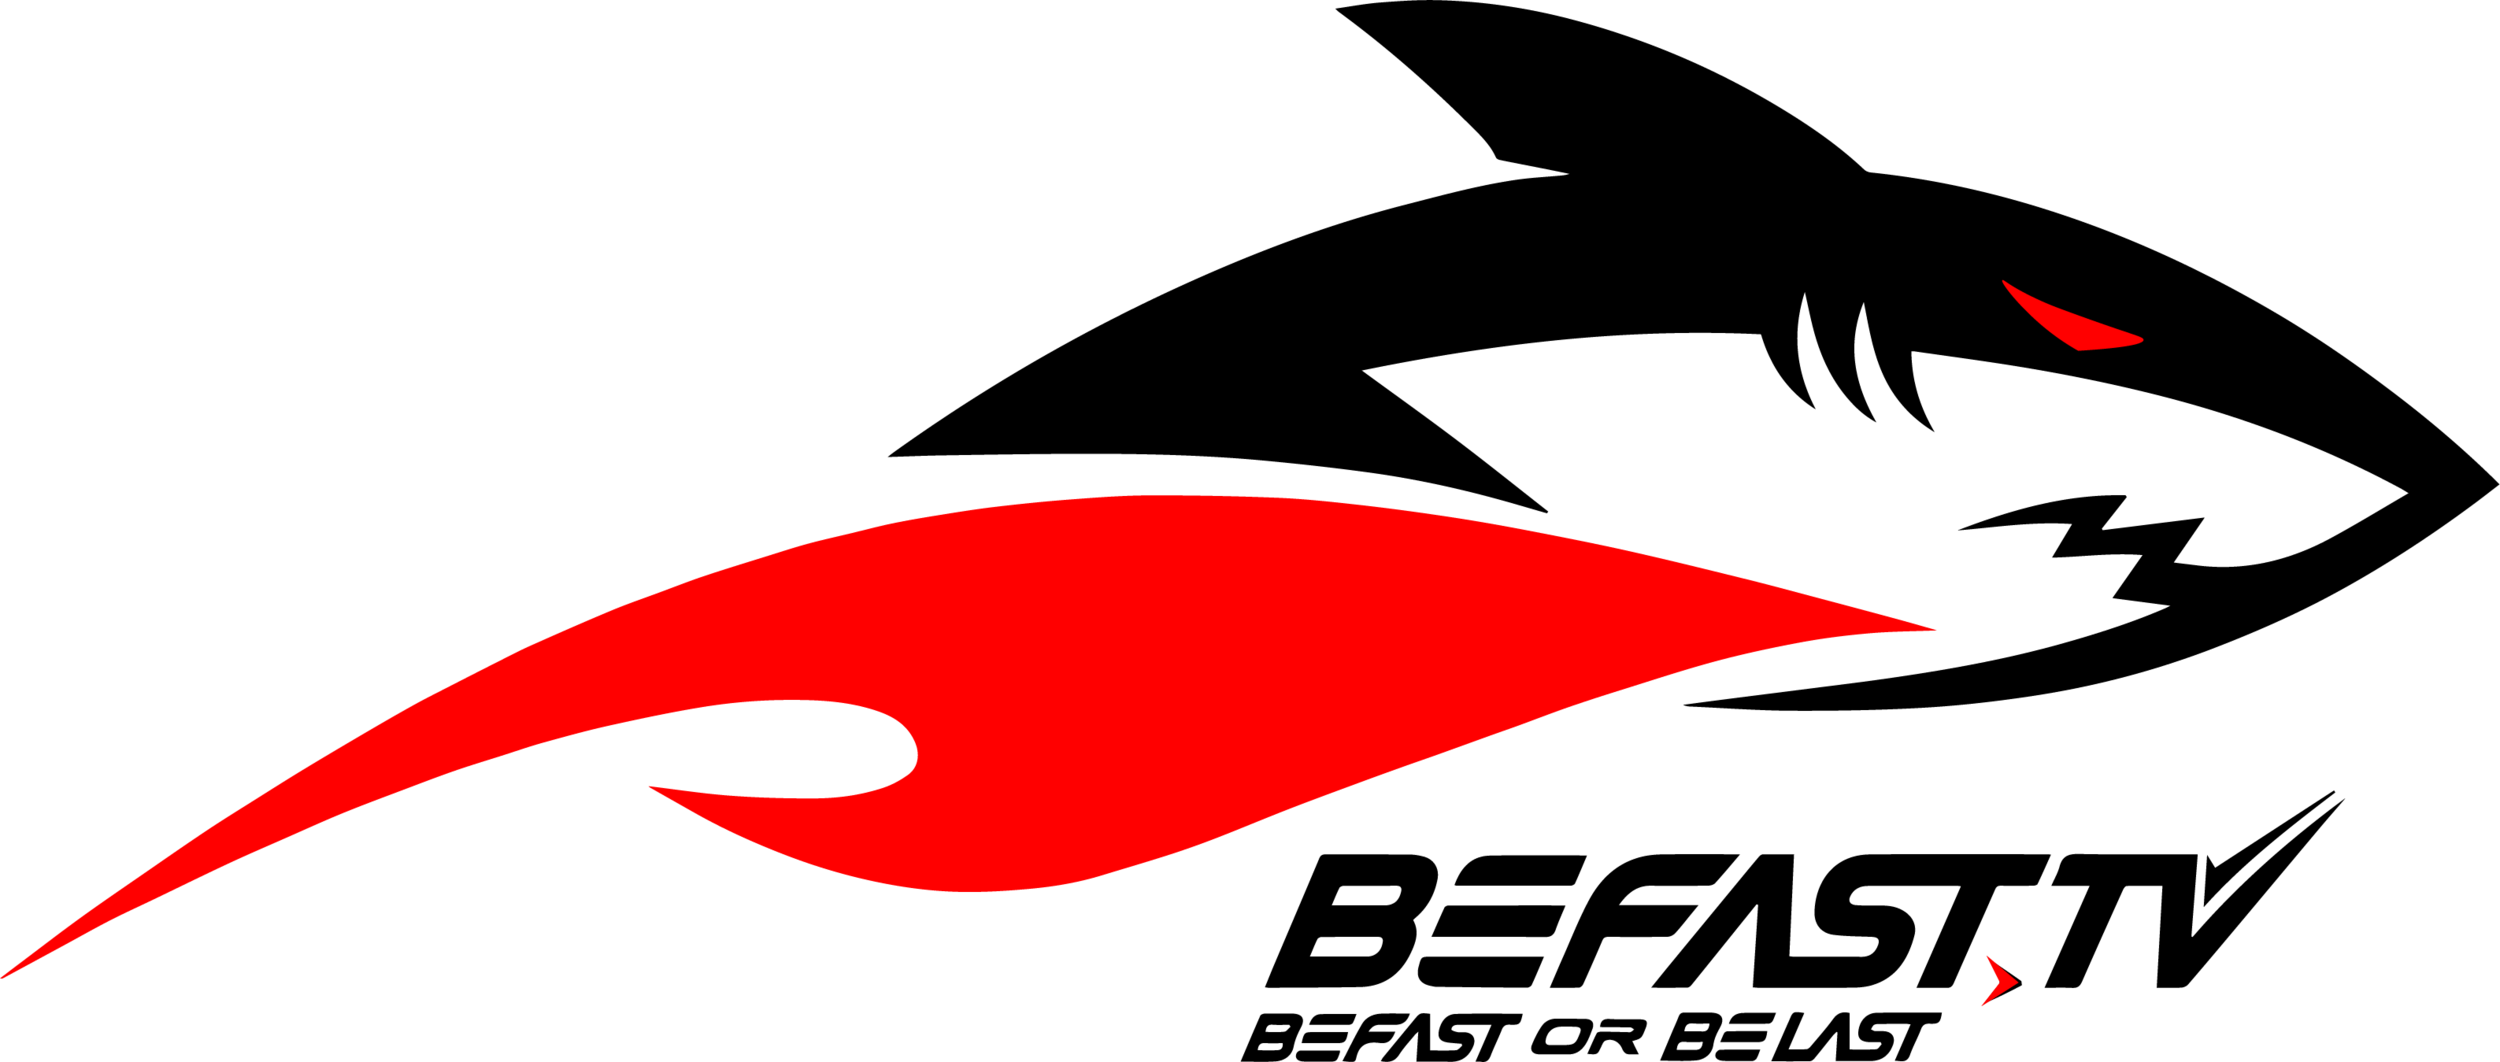 BeFast Black Shark Logo.png